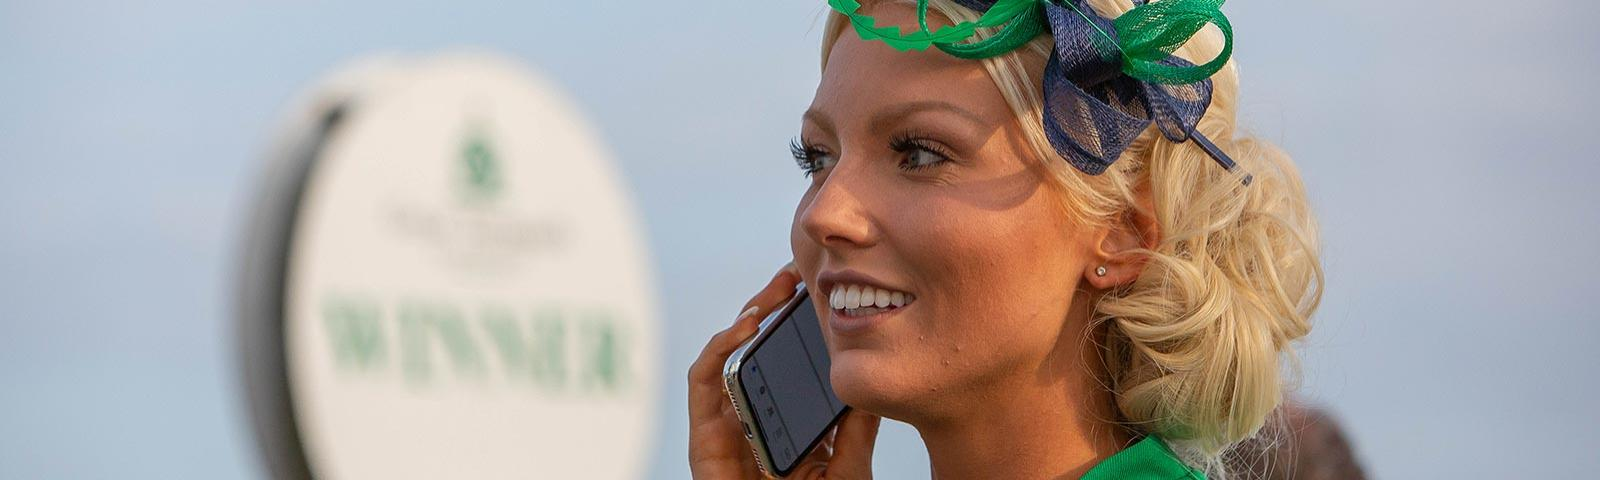 A dressed up woman making a phone call while at the races.